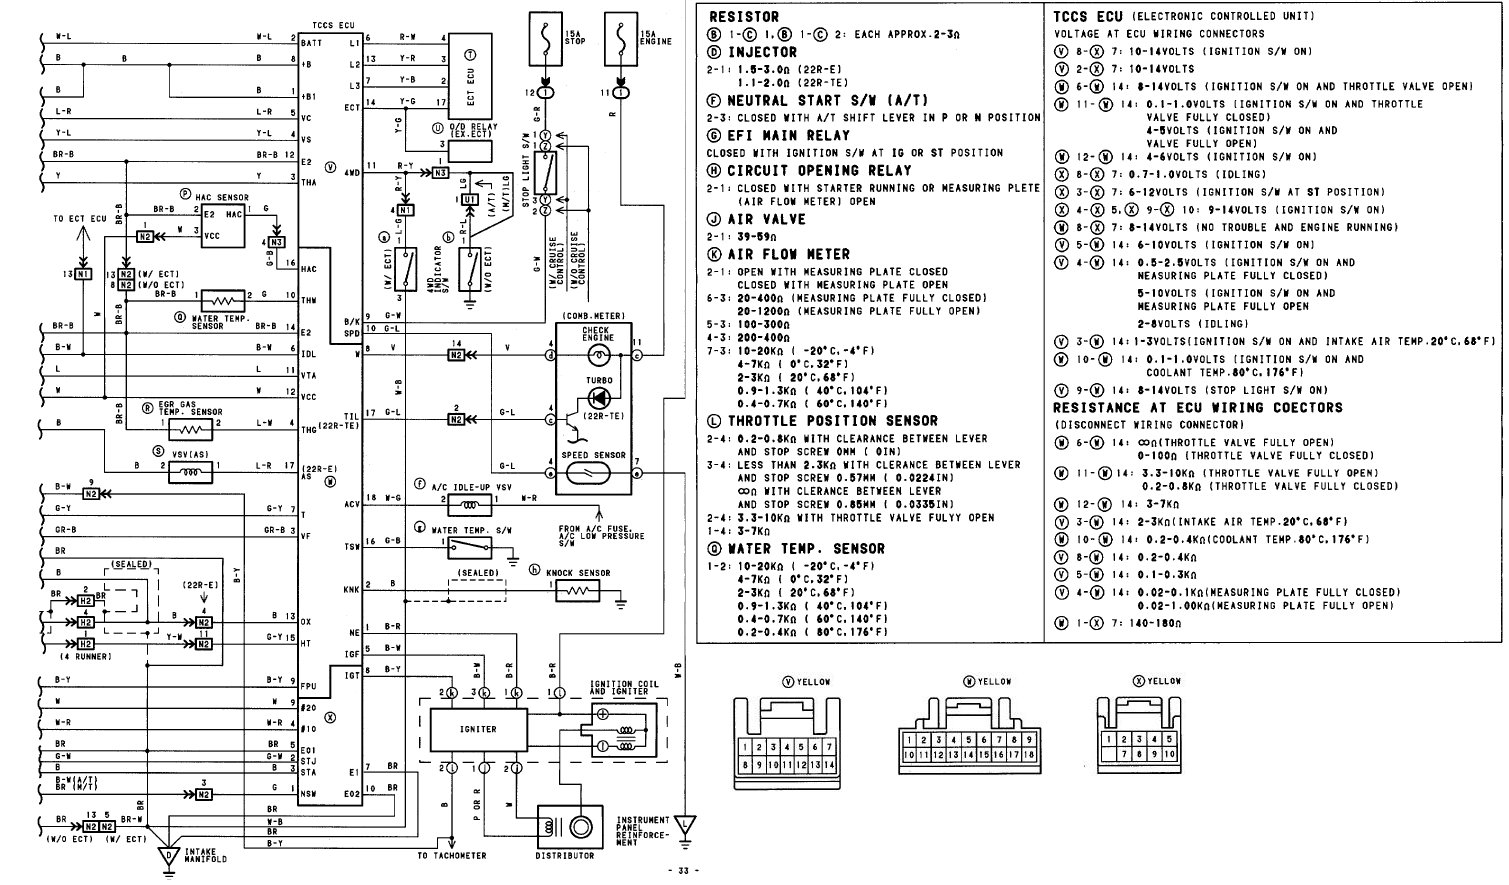 toyota 4runner wiring diagram jHkLHrj 2000 4runner wiring diagram 2005 4runner wiring diagram \u2022 wiring 1998 toyota 4runner fuse box diagram at n-0.co